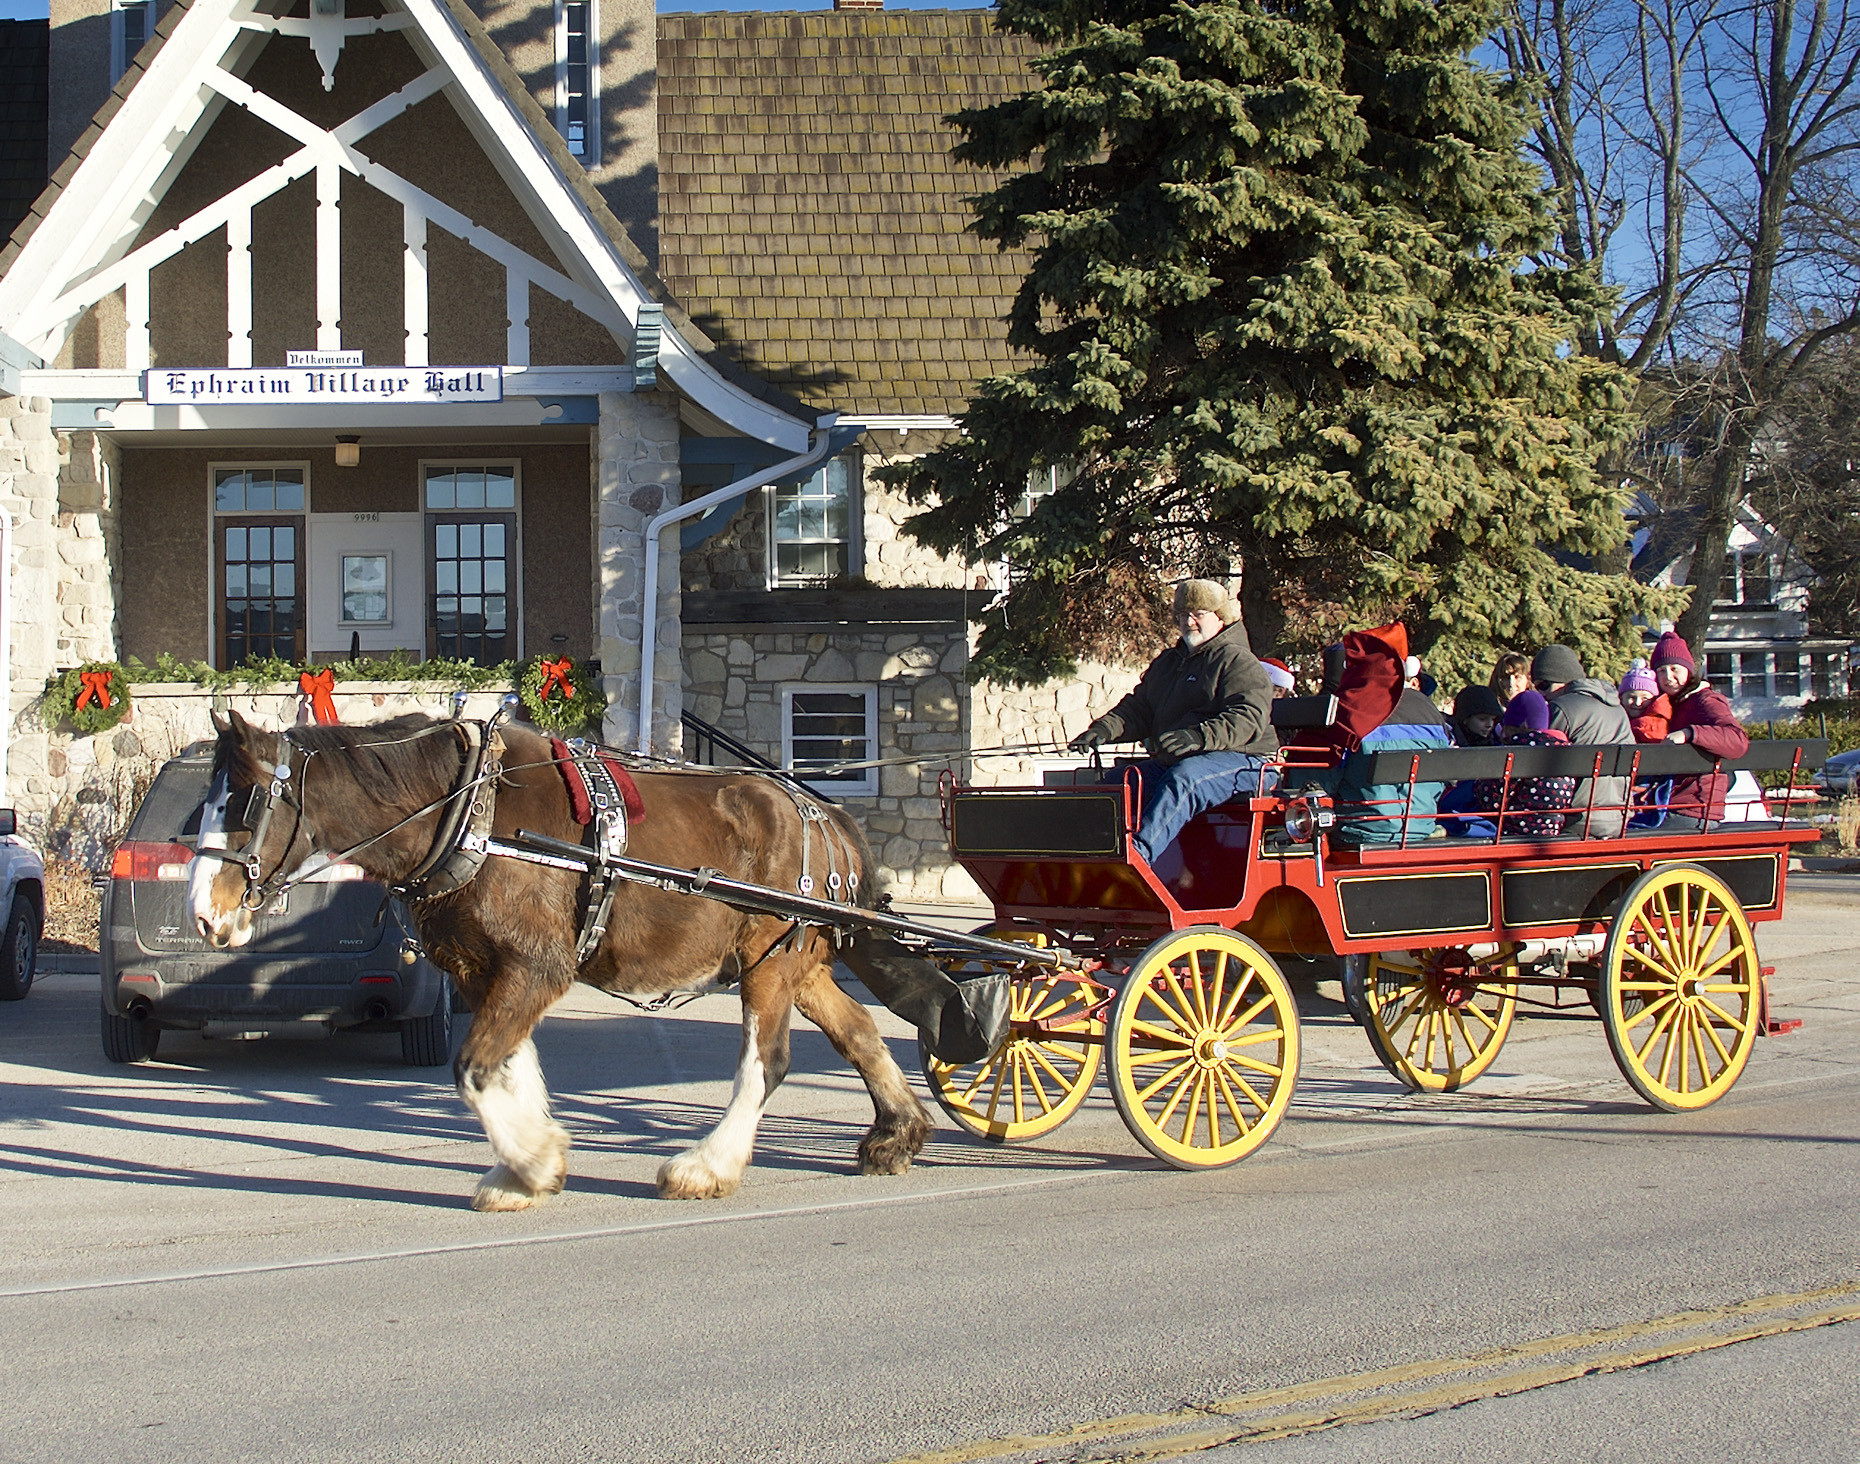 Horsedrawn carriage rides are part of the festivities in Ephraim on Saturday, Dec. 3. Photo by Len Villano.